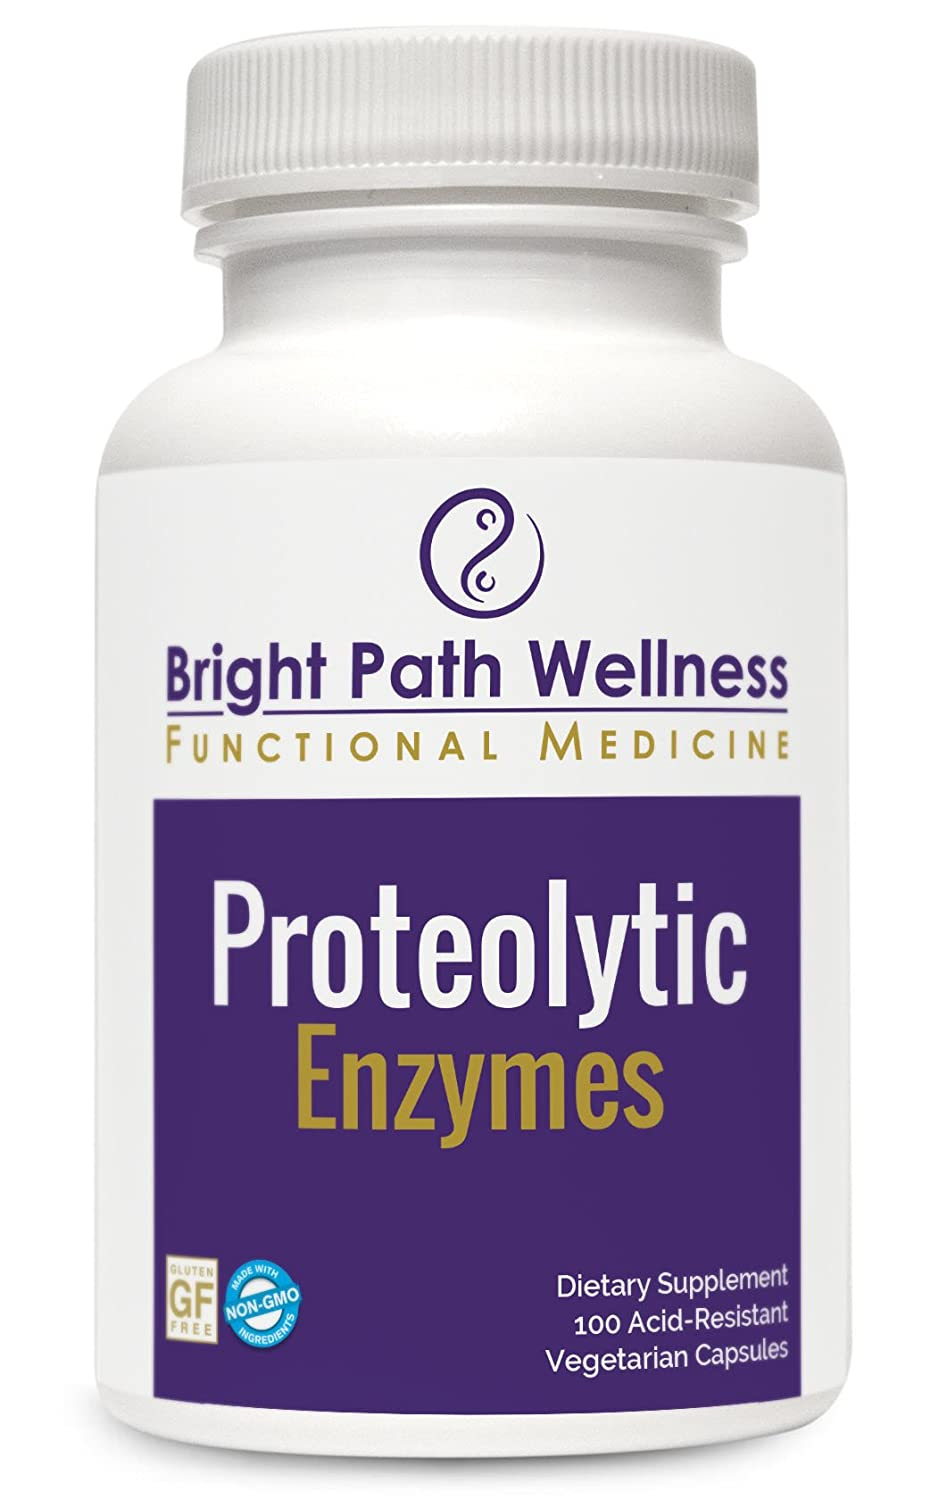 Amazon.com: proteolytic enzimas – 100 Vegetable Capsules ...